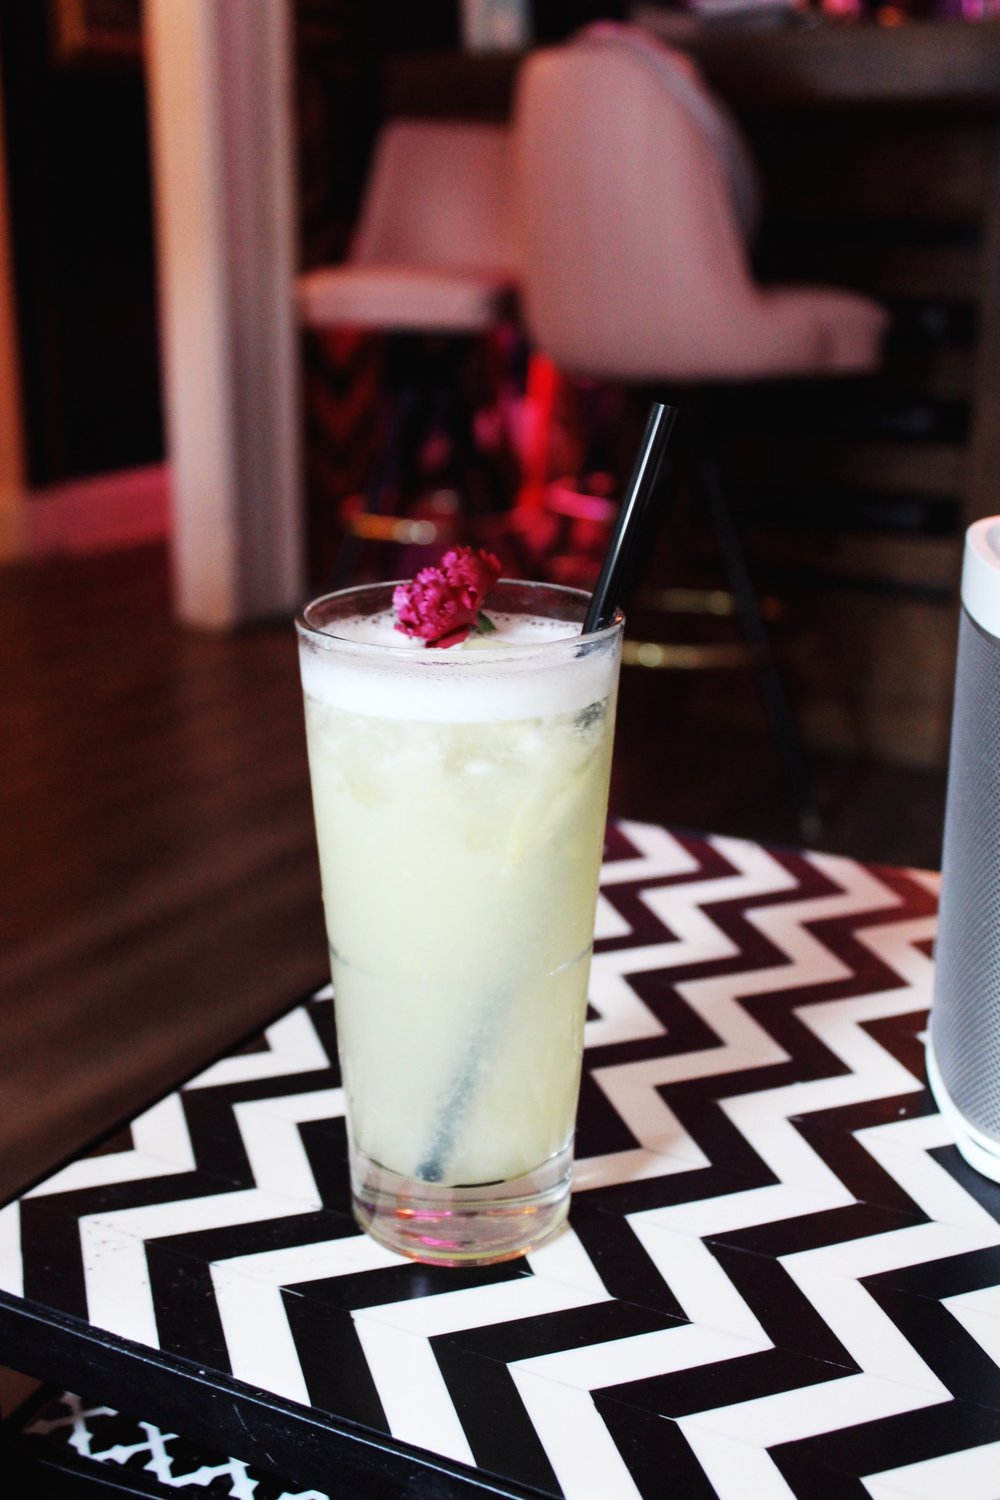 Pineapple Jalapeño Margarita garnished with a purple flower on a chevron side table from Flamingo House Social Club